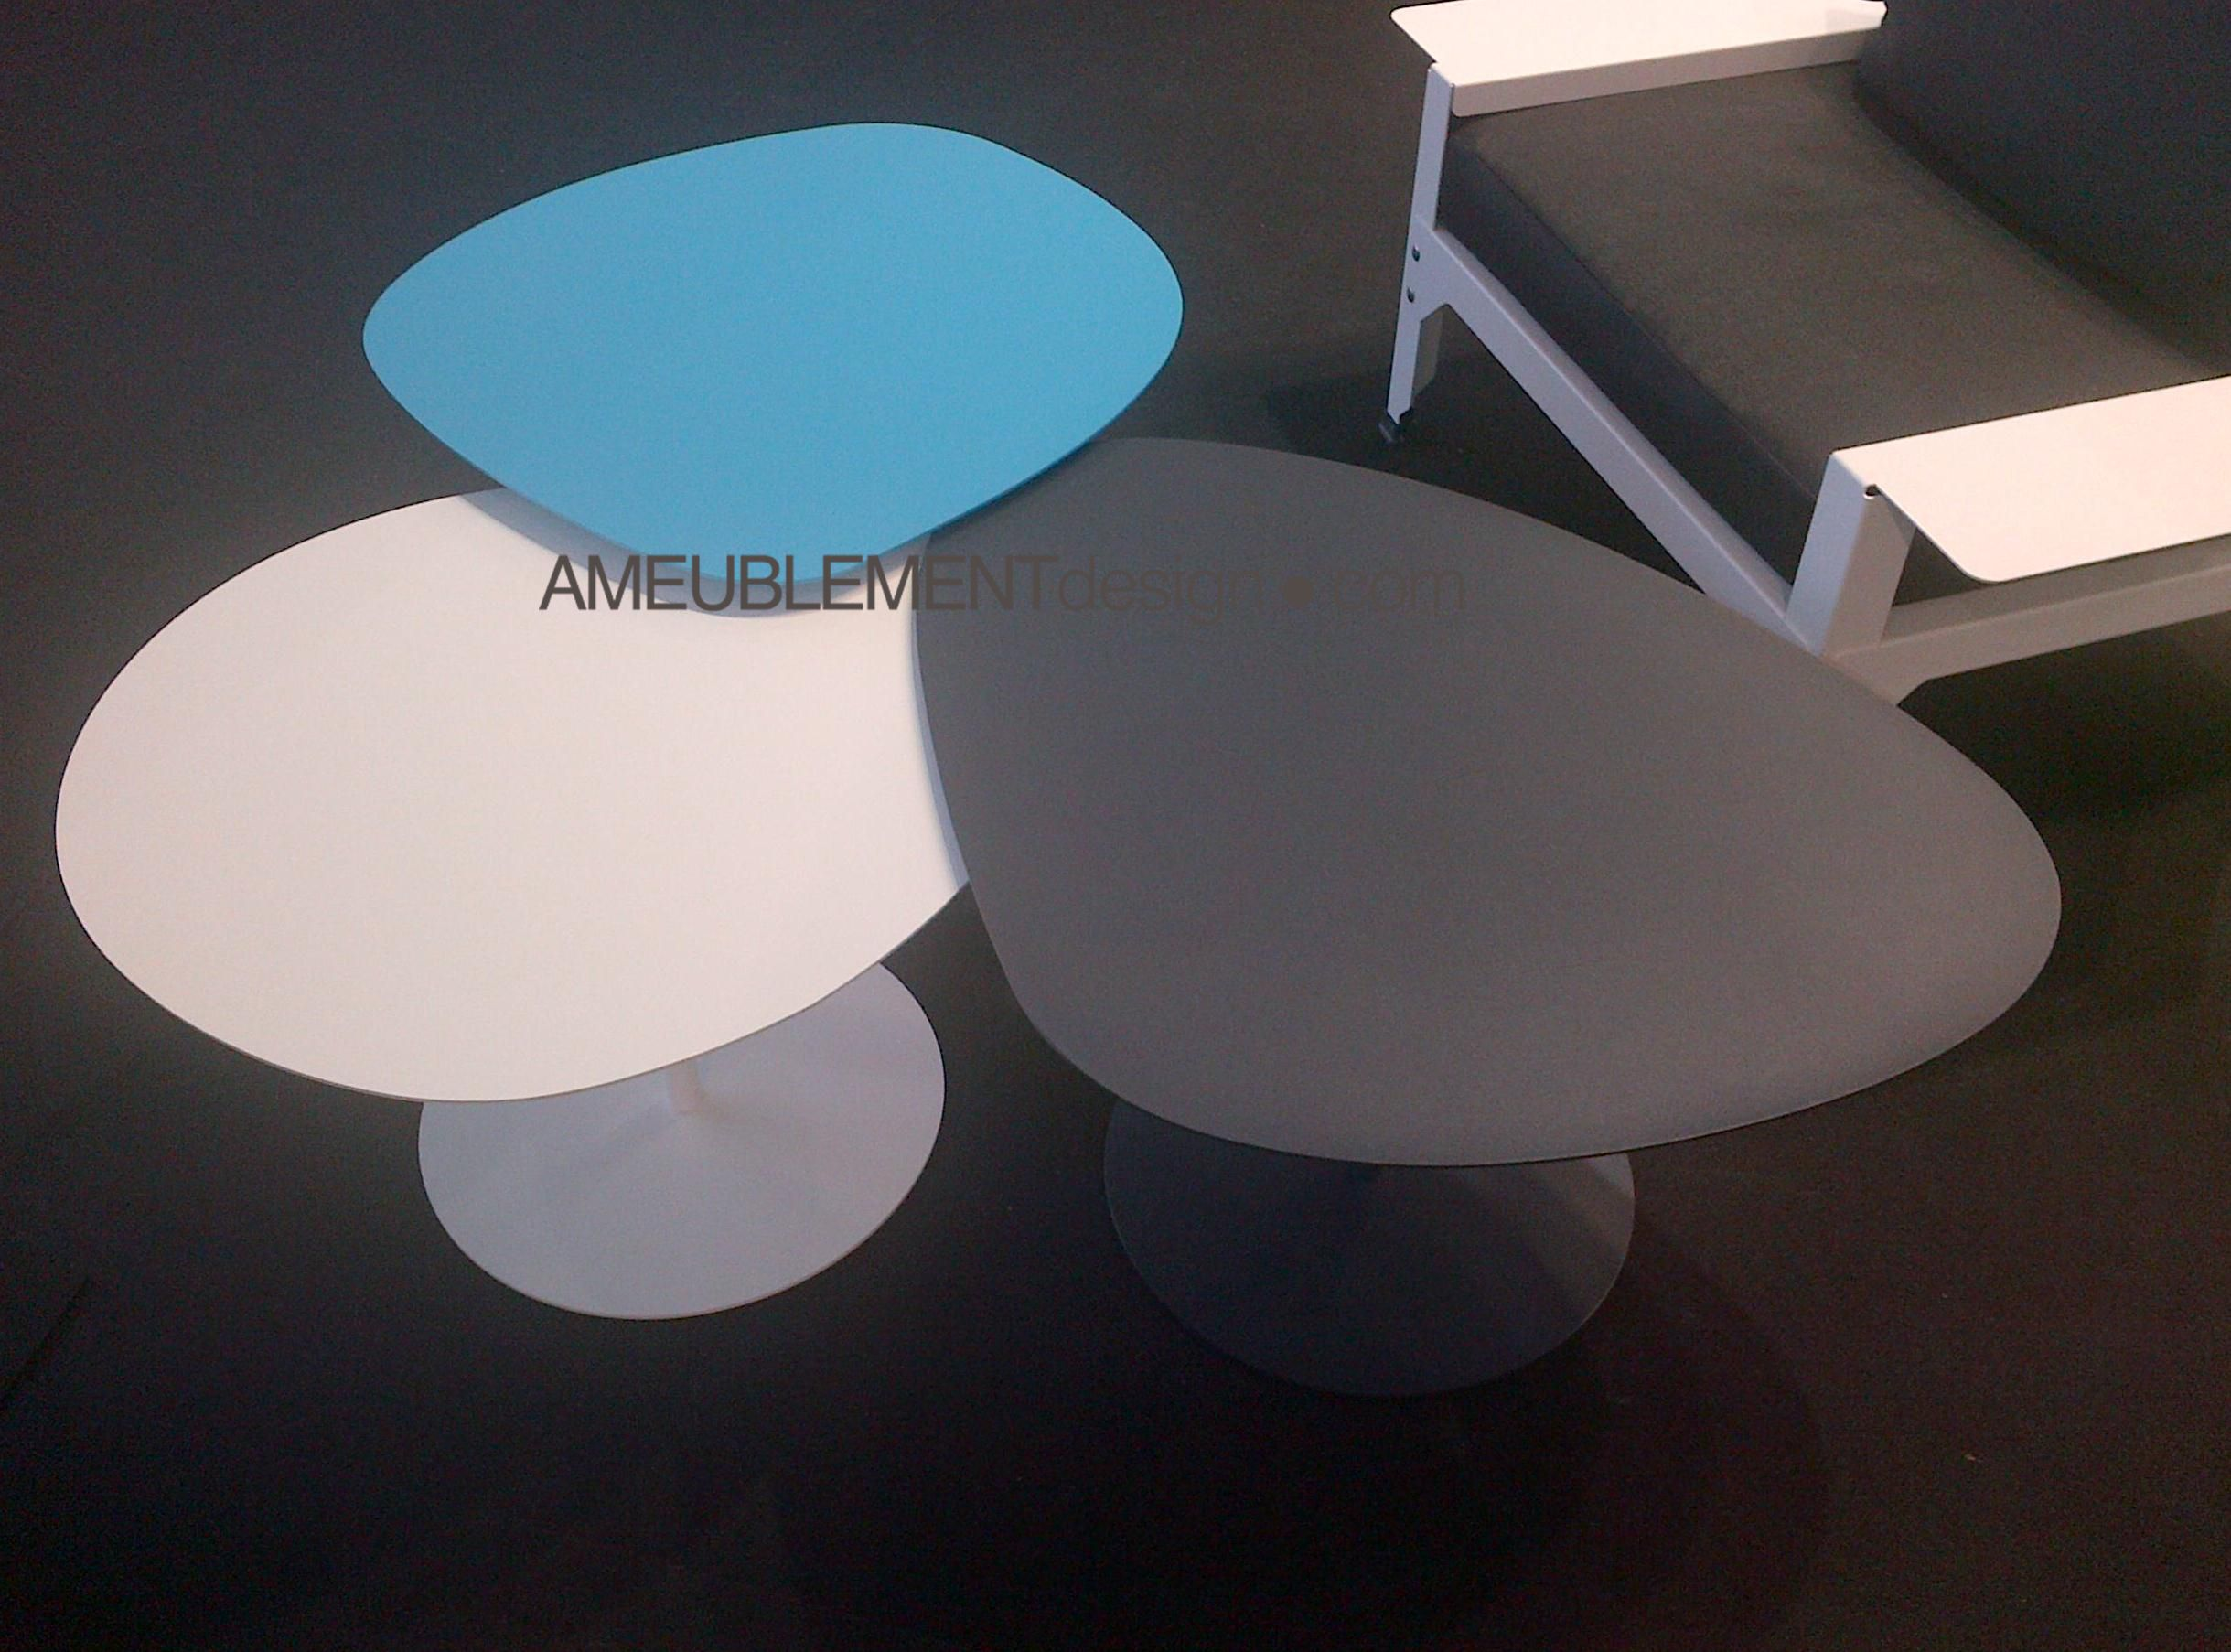 Table Basse 3 Galets By Matiere Grise Salon Maison Et Objet Table Basse Maison Et Objet